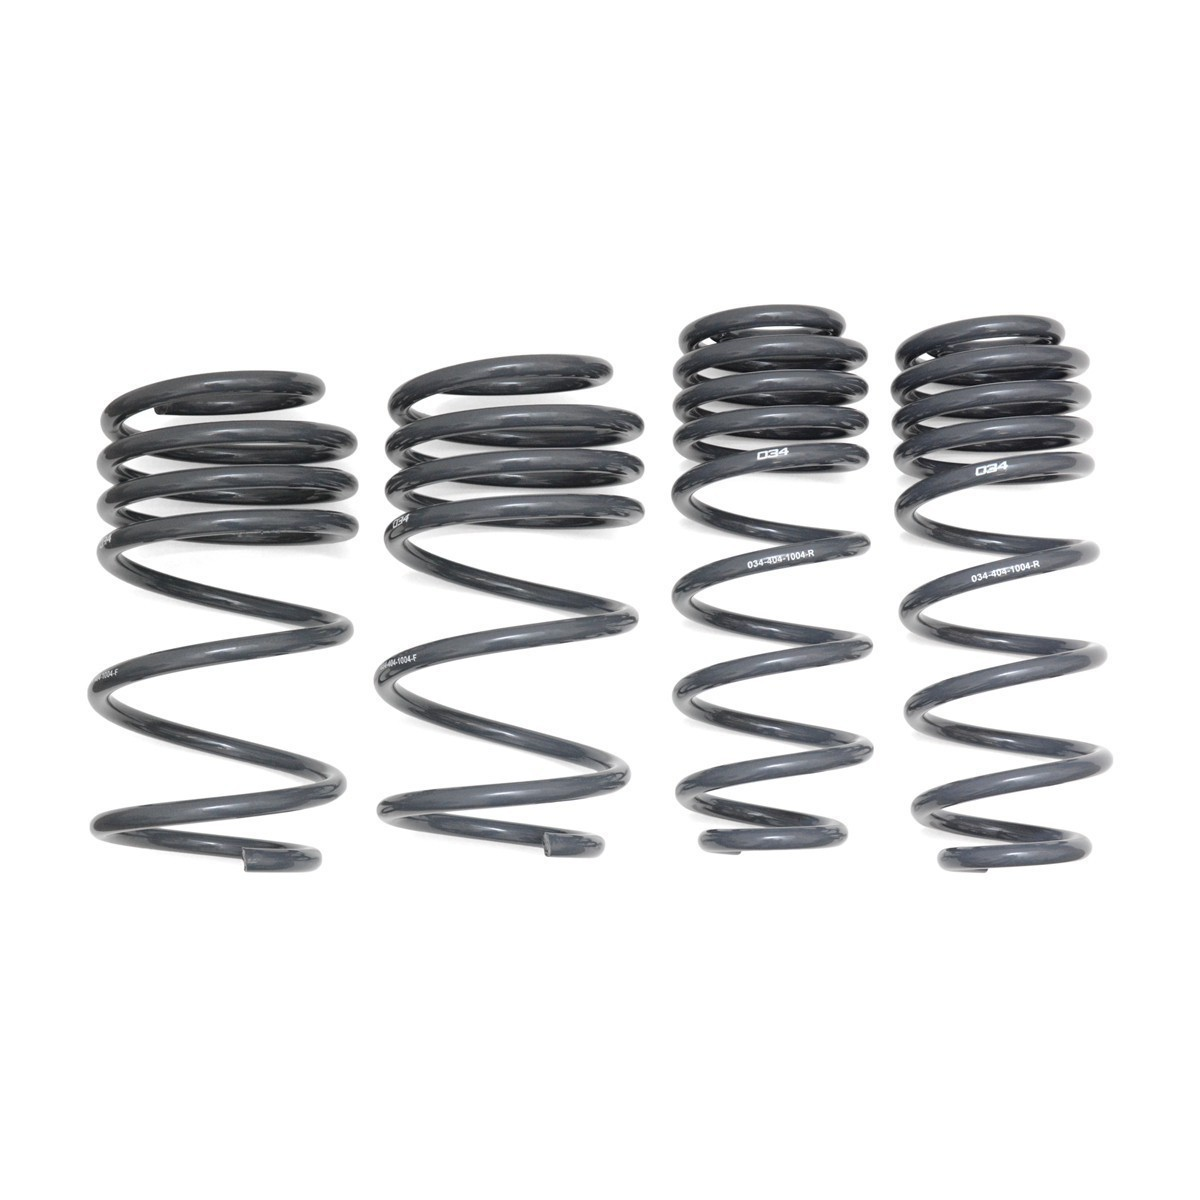 034 Dynamic+ Lowering Springs for Volkswagen MK7 Golf R